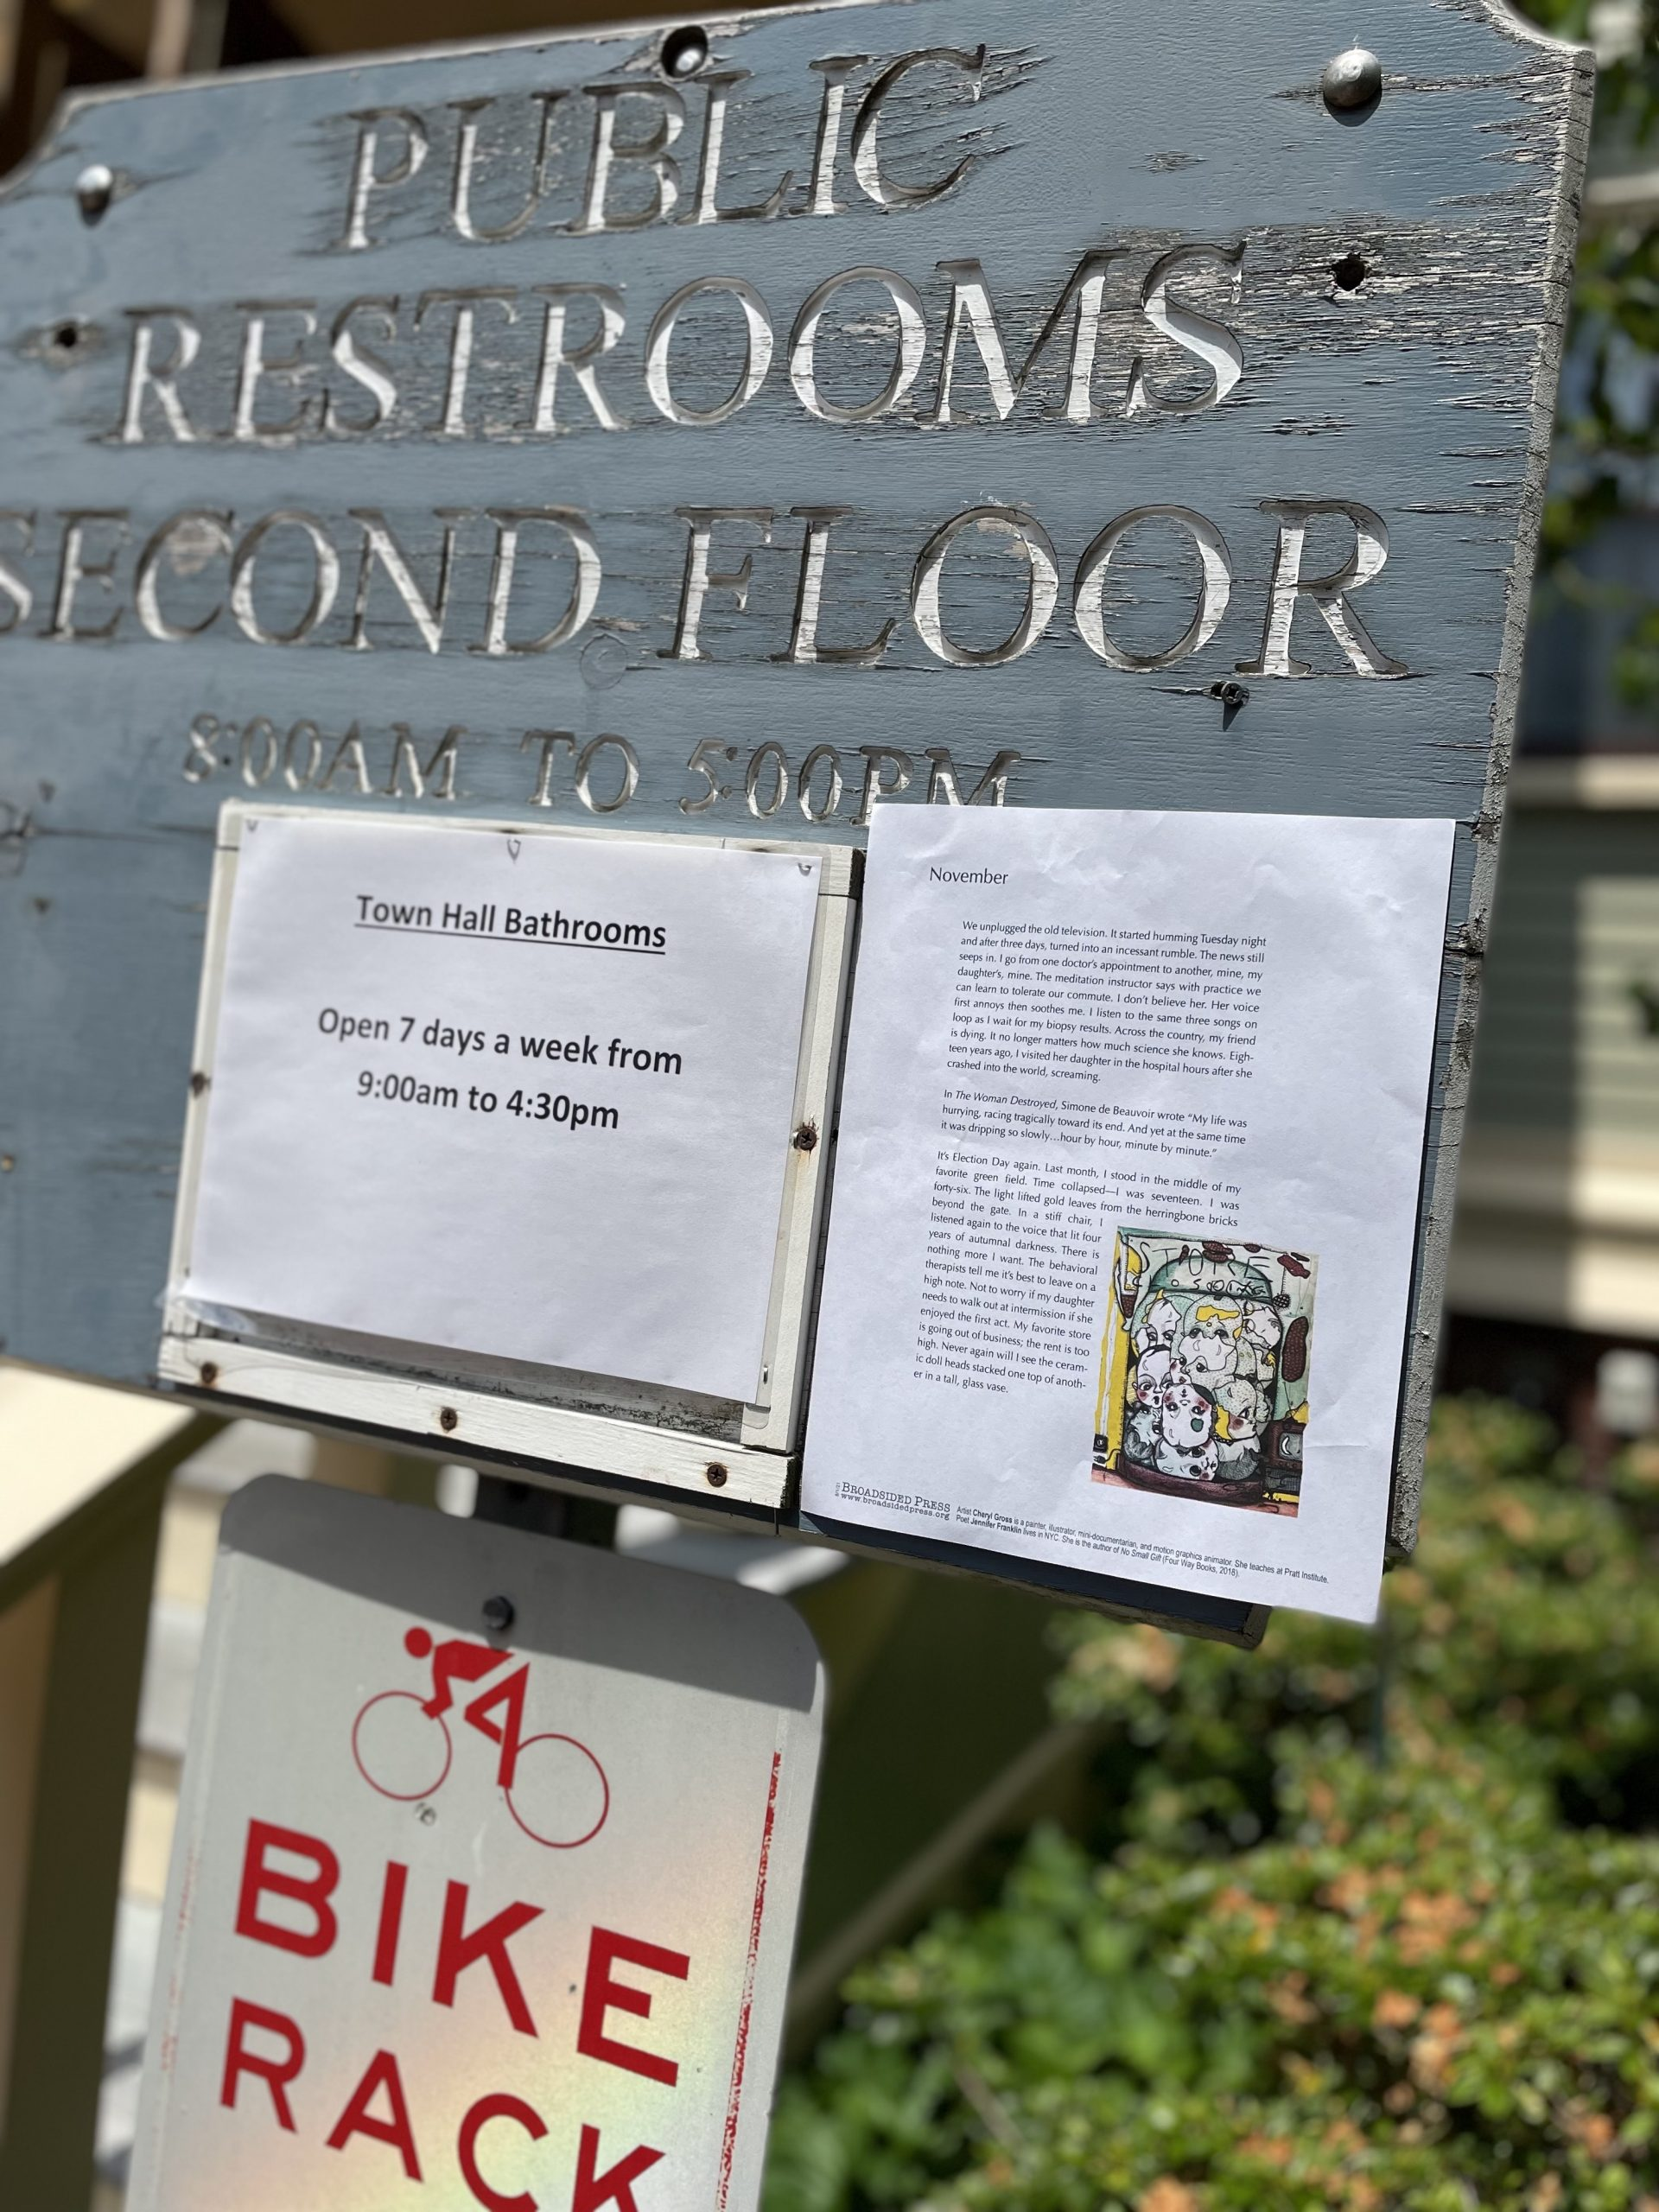 """Grey wooden sign reads """"Public Restrooms Second Floor"""" with bike rack sign below and broadside taped to right bottom corner of wooden sign."""